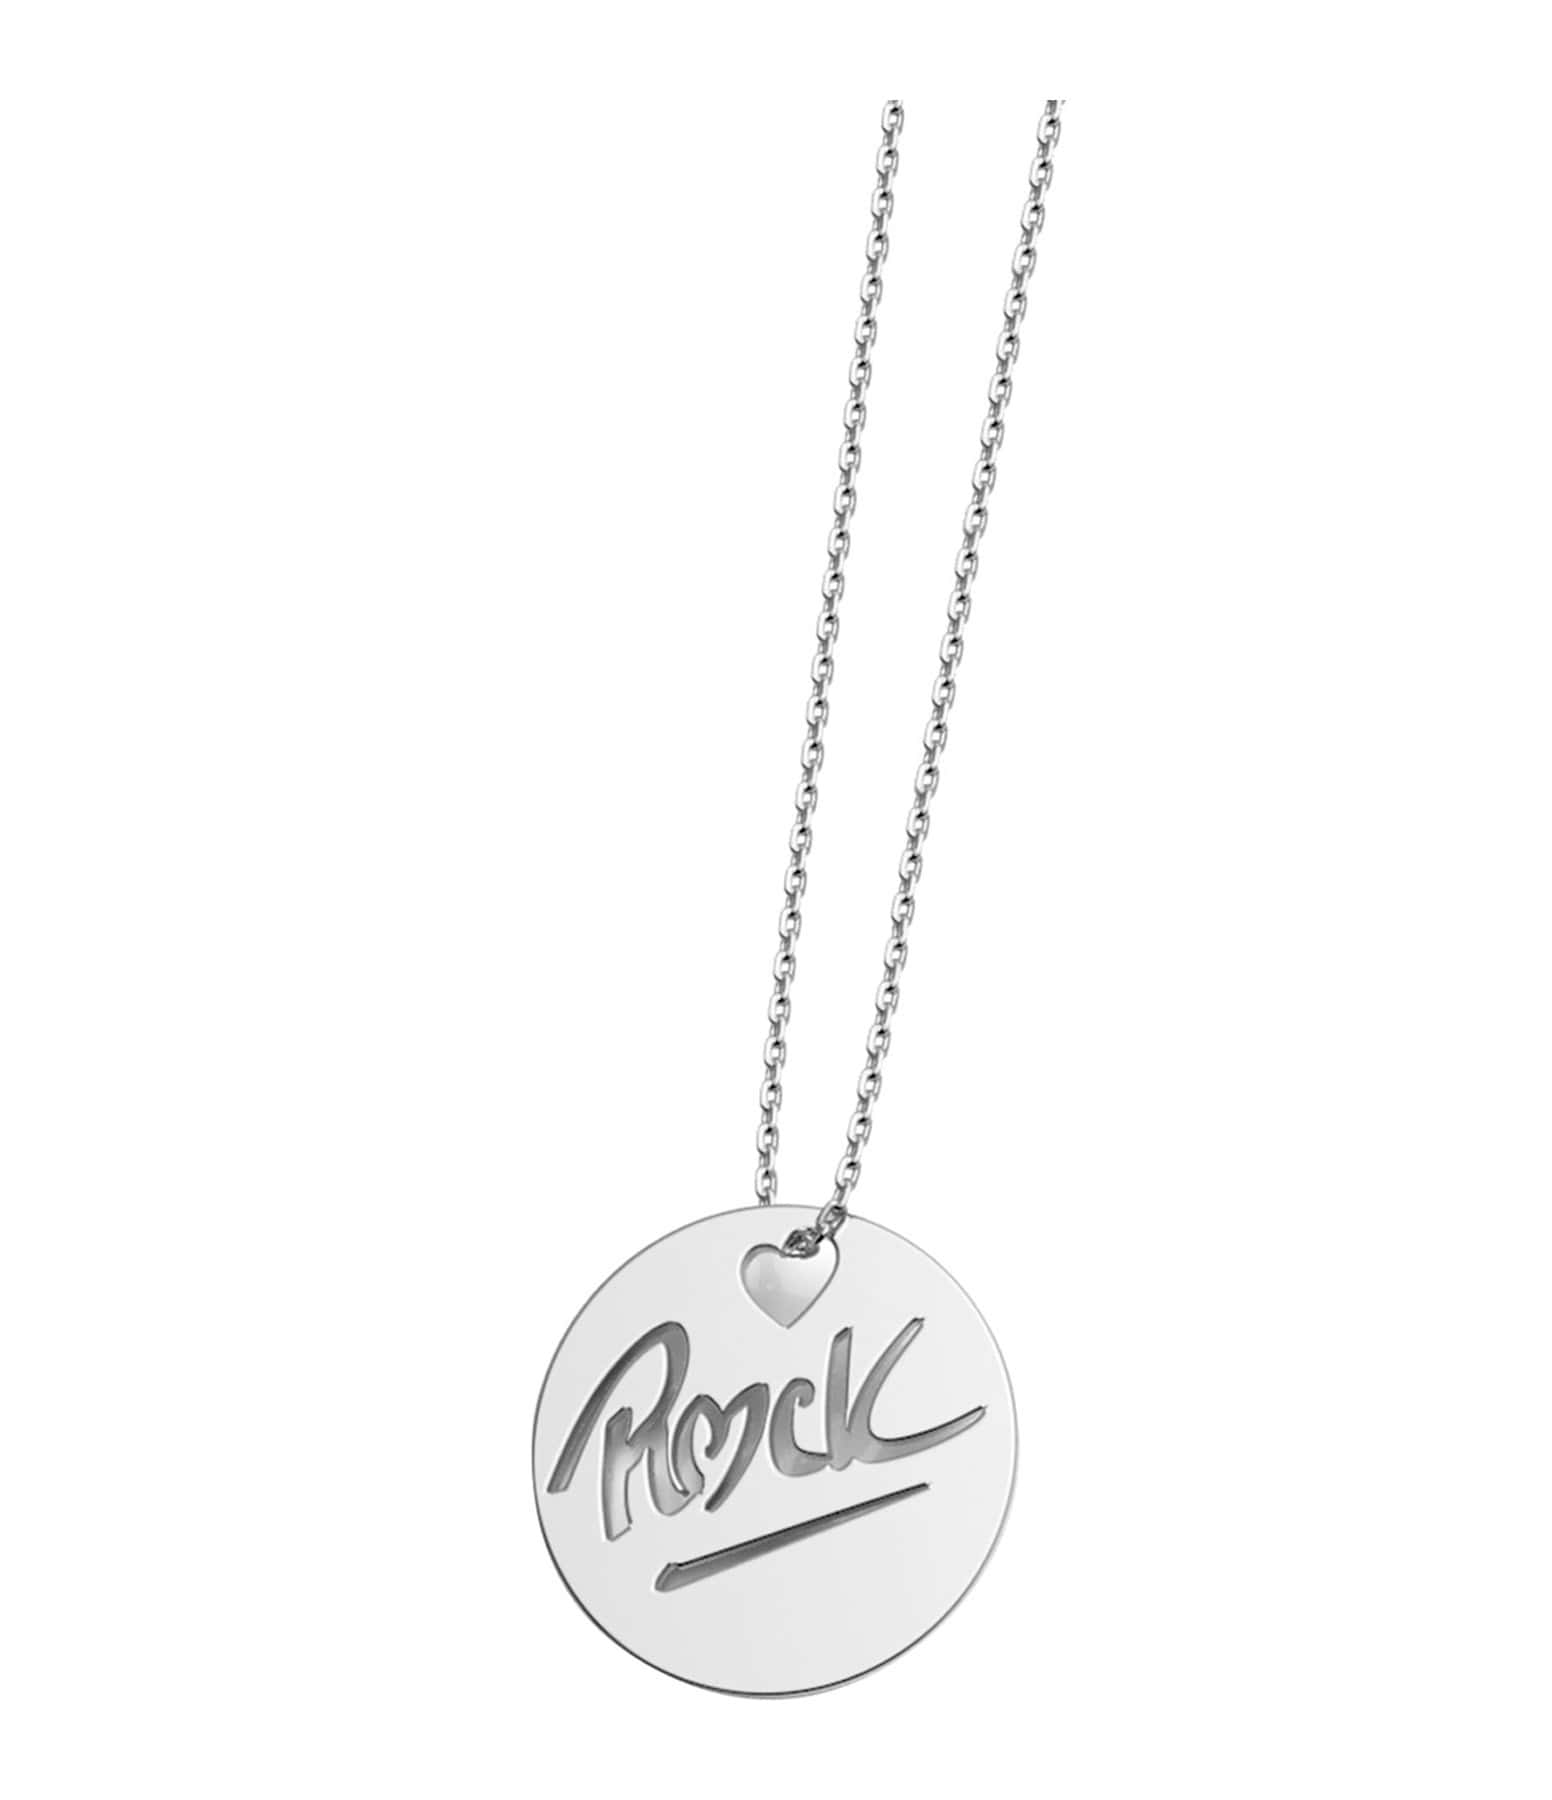 NAVA JOAILLERIE - Collier Rond Rock L Or Blanc